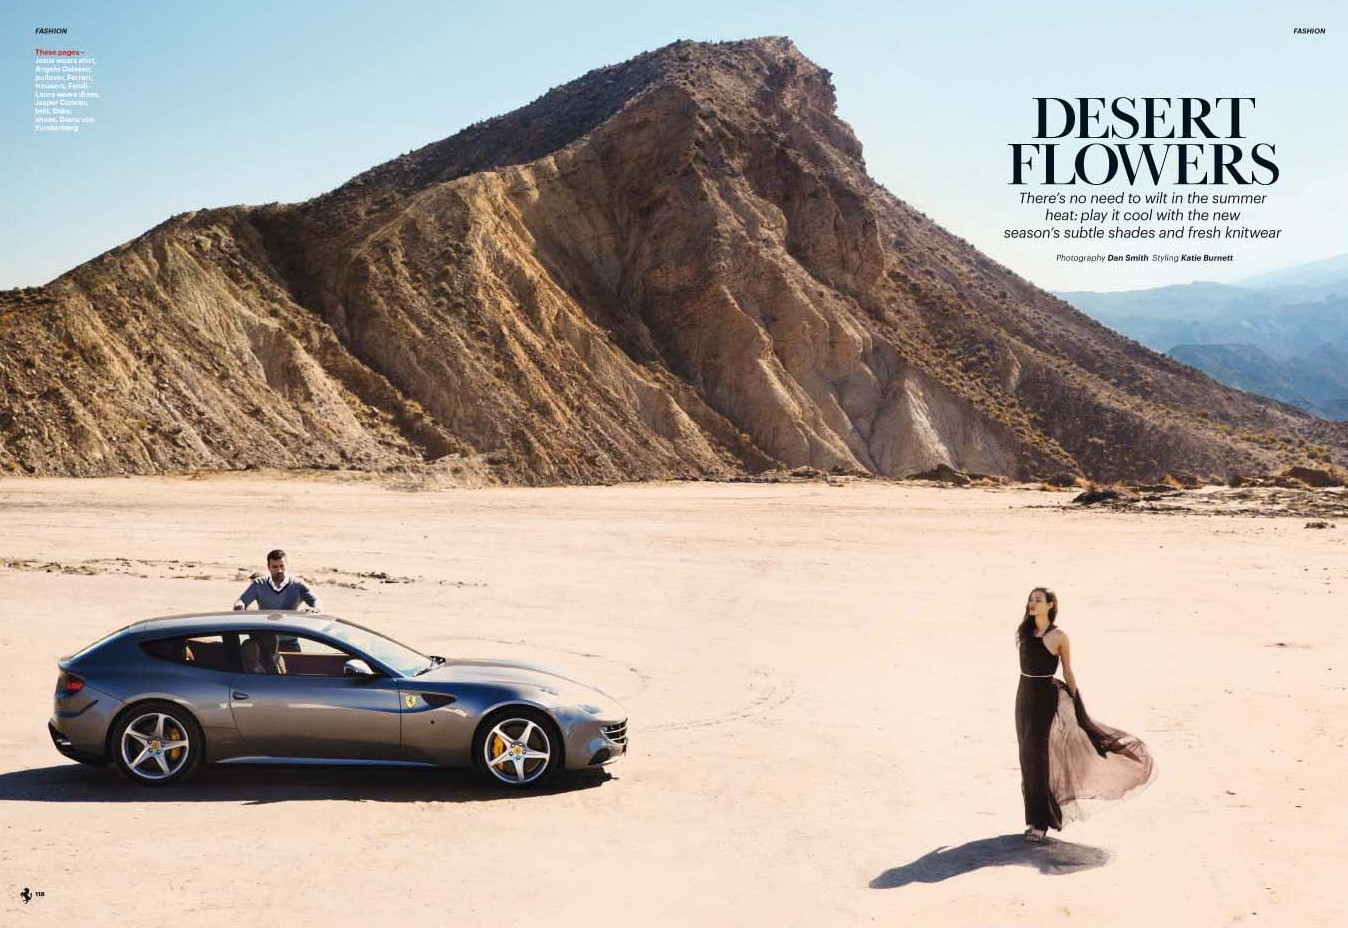 The Official Ferrari Magazine_Condé Nast, Photo: Dan Smith, CD: Helen Niland